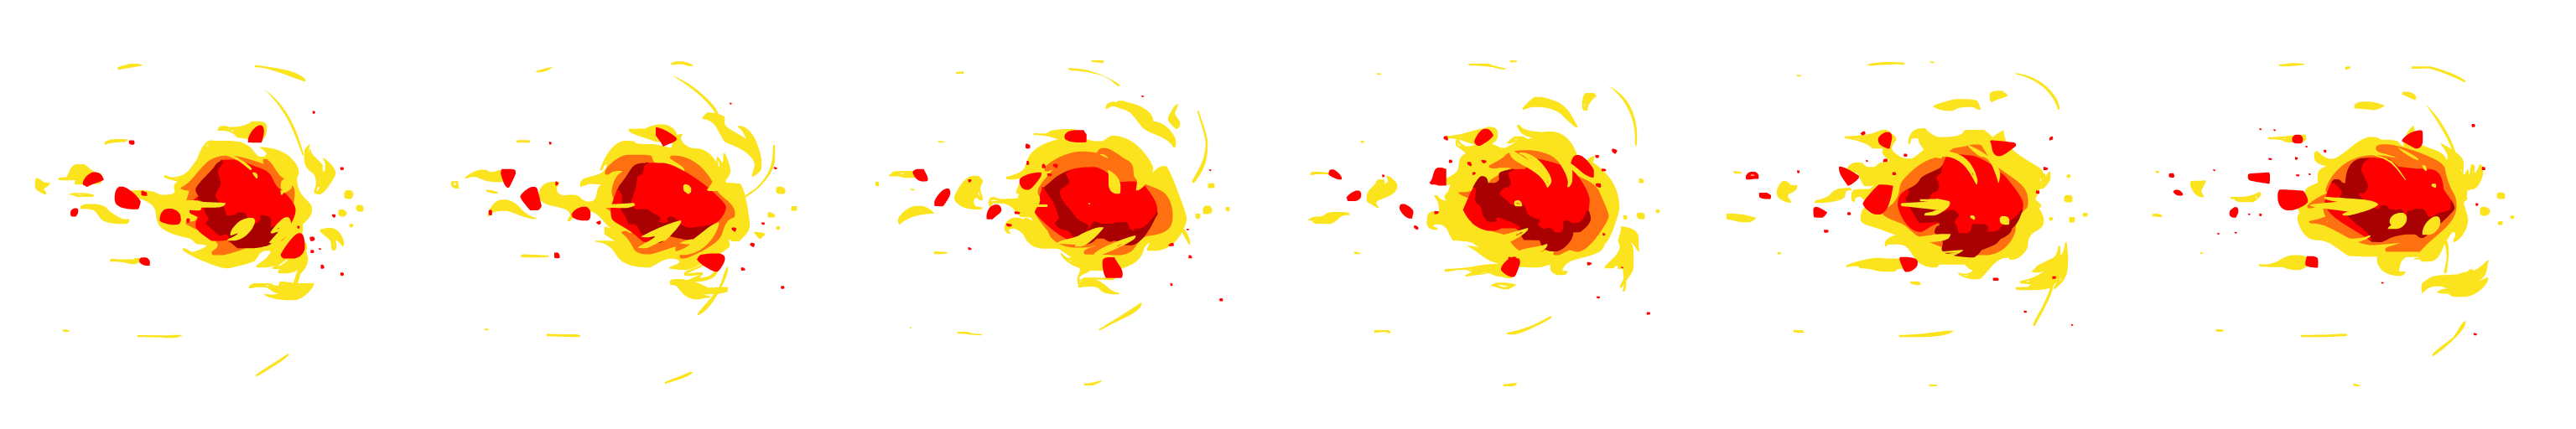 Fire sprite png. D animation tutorial